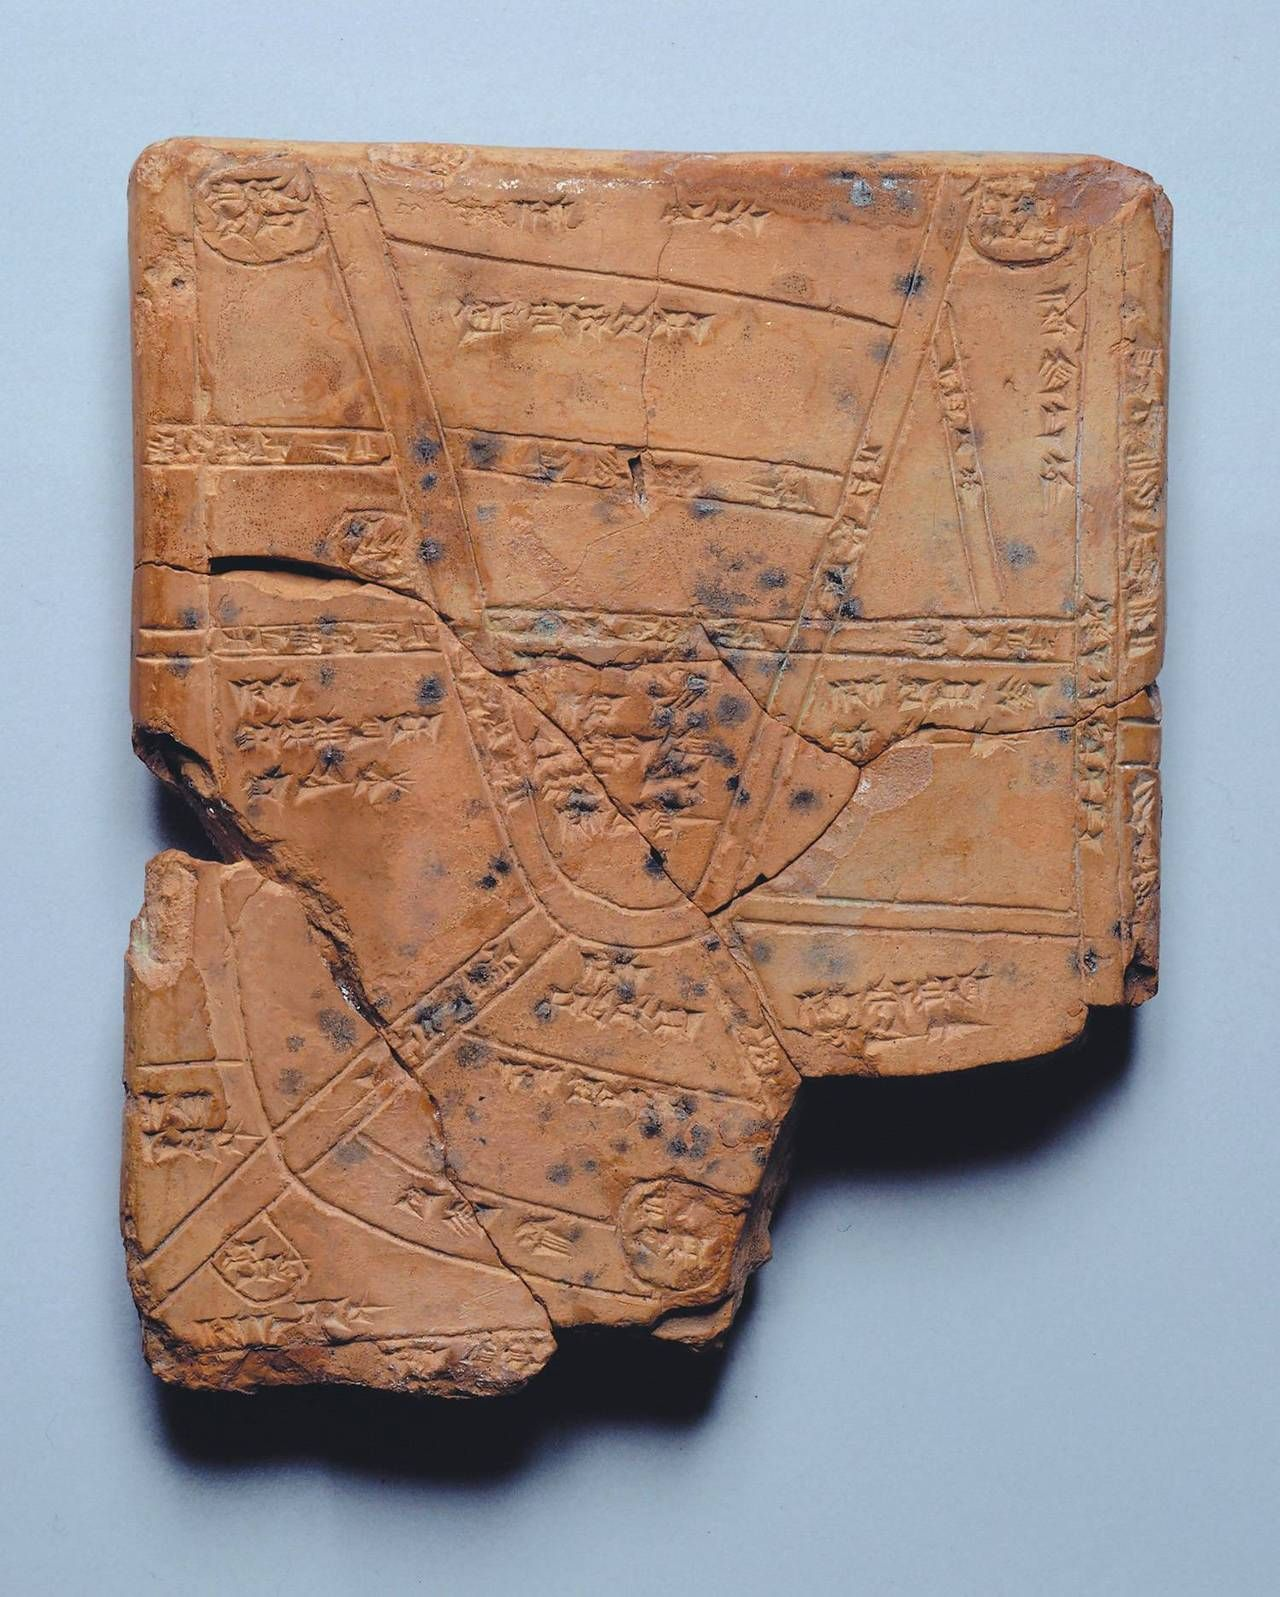 Phenomenal Guide Staggering Secrets In The Clay Tablets Home Interior And Landscaping Transignezvosmurscom